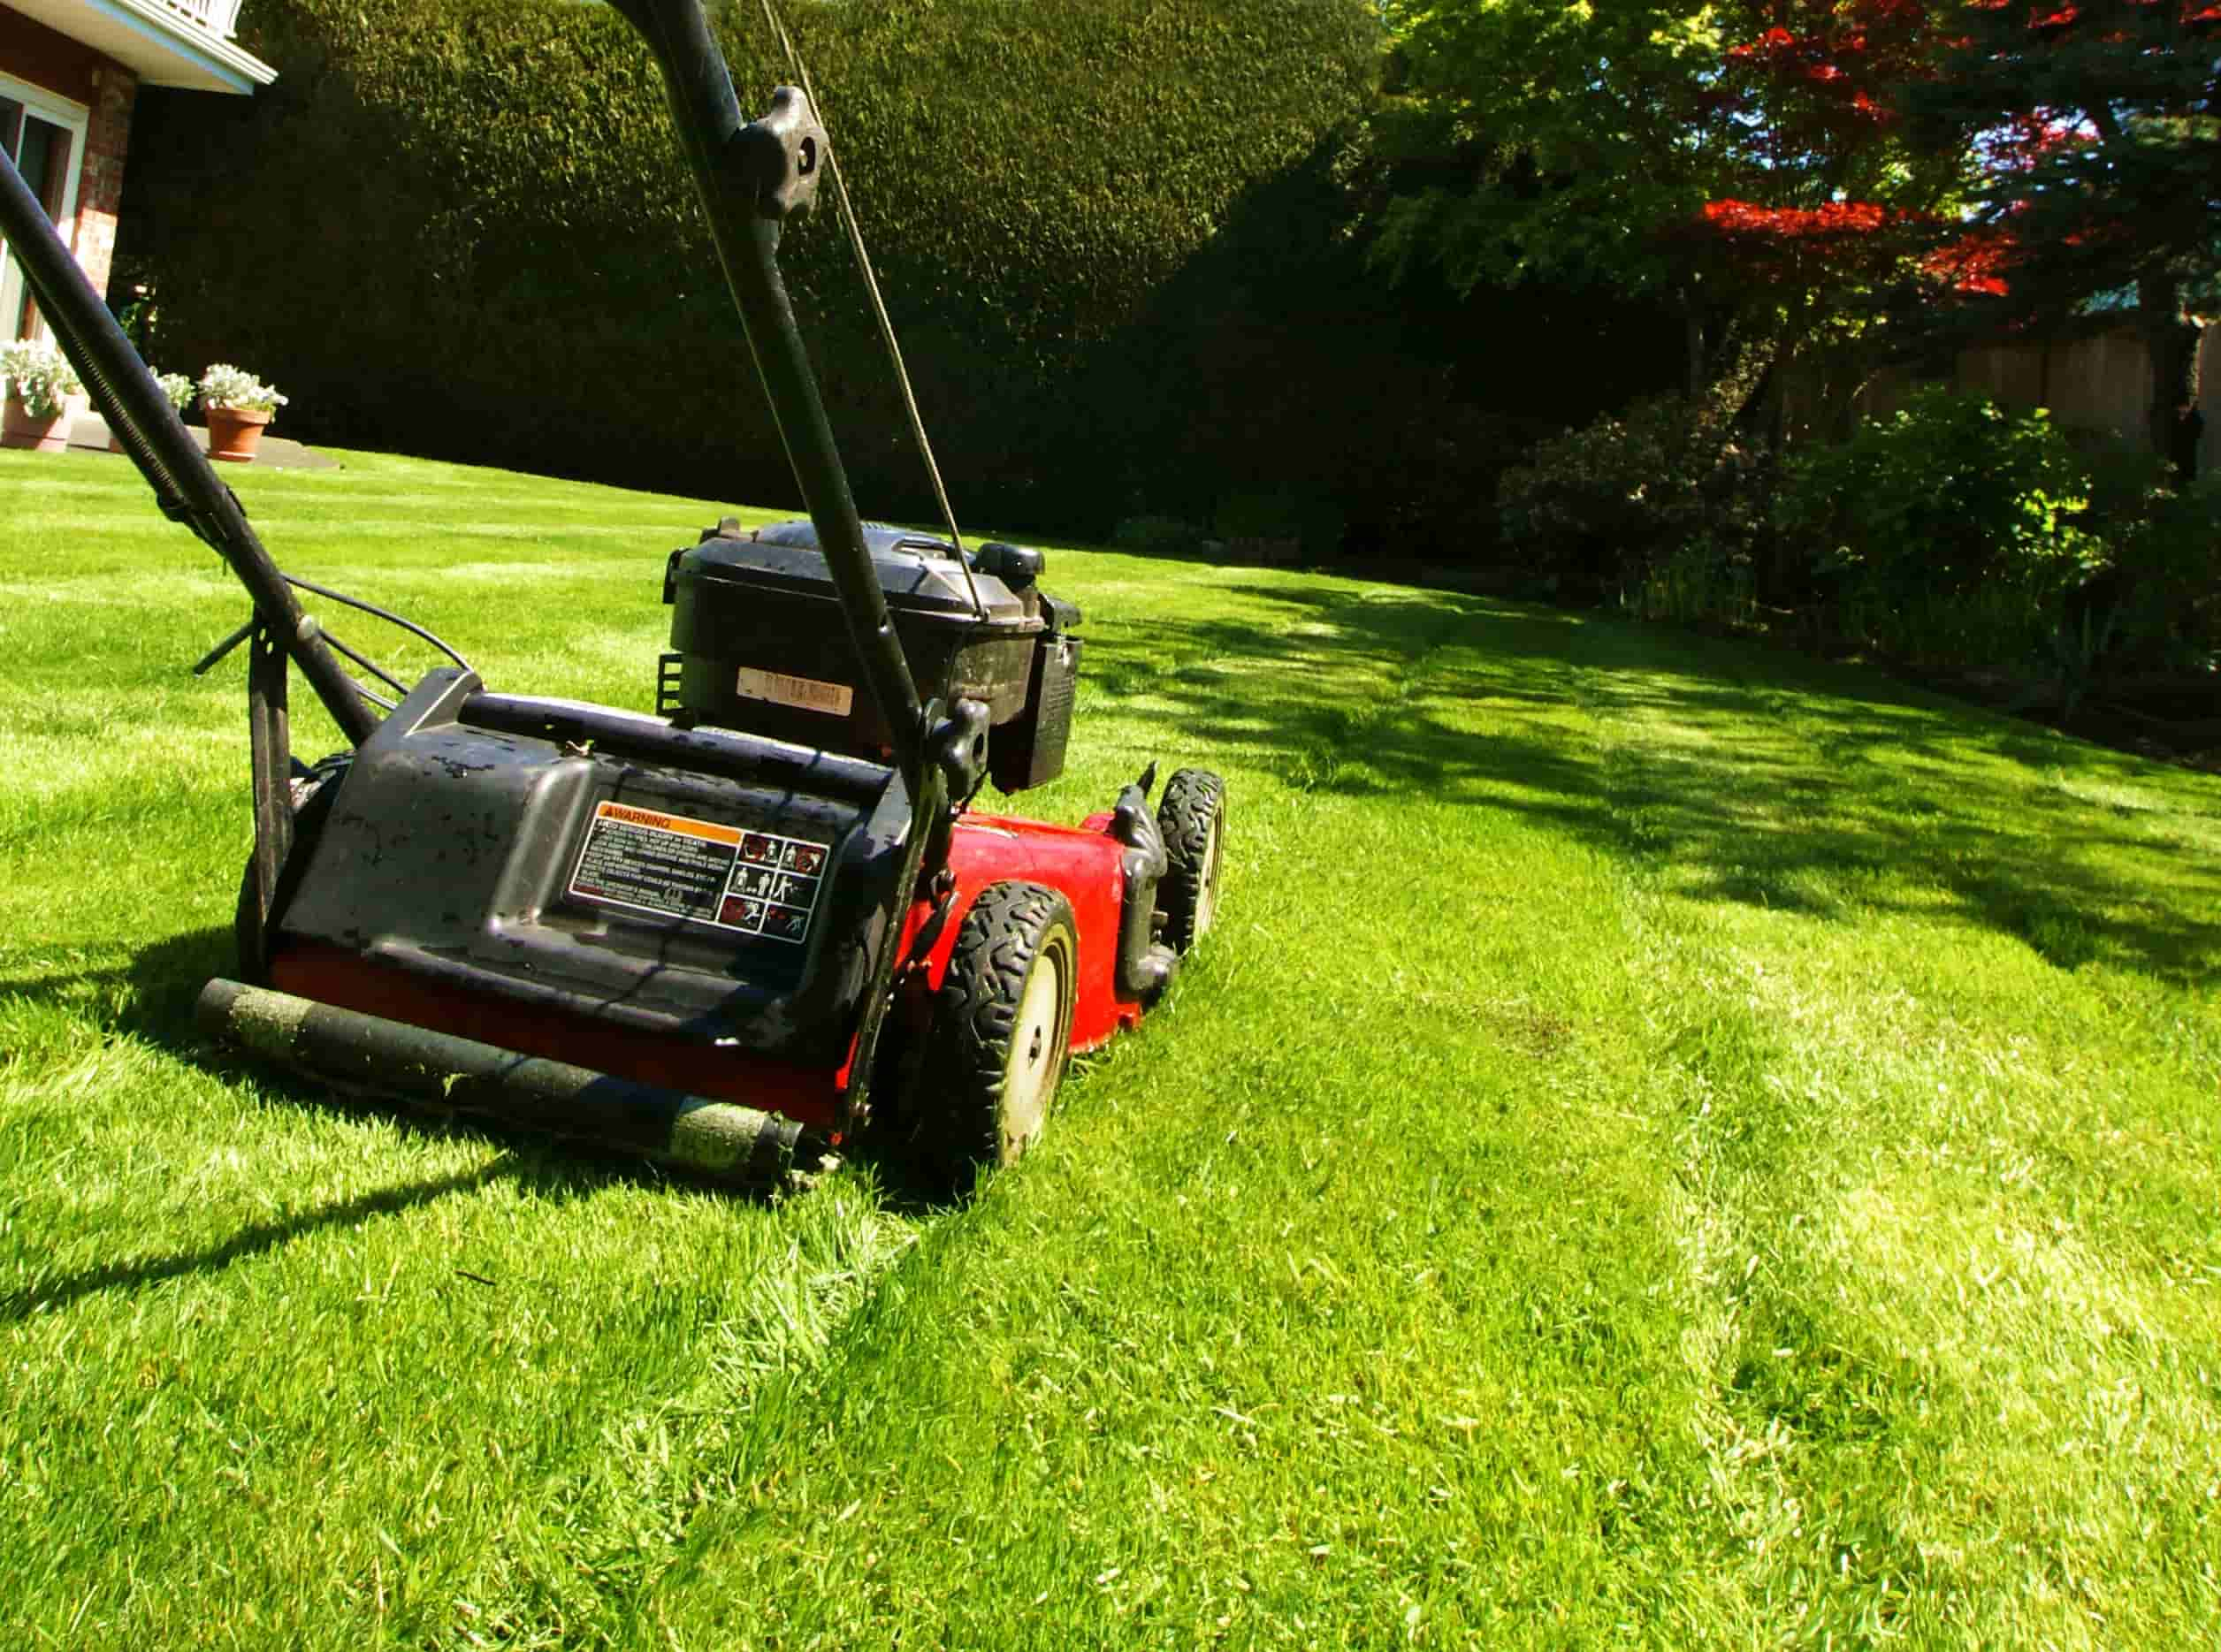 Photo of a lawn mowing machine